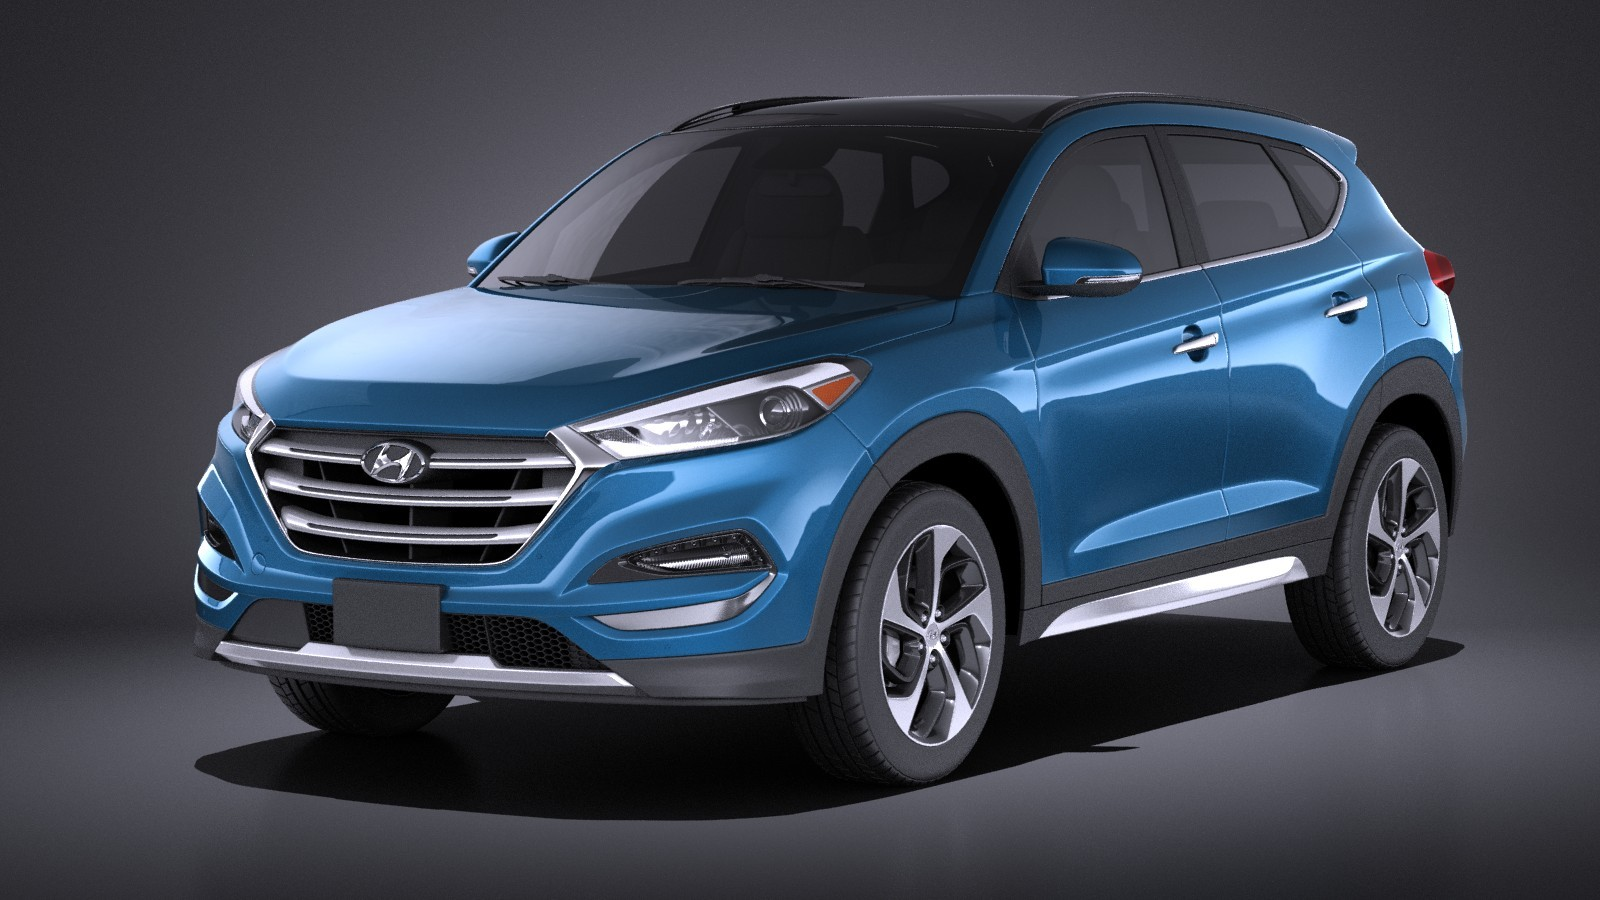 hyundai tucson specifications price mileage pics review. Black Bedroom Furniture Sets. Home Design Ideas